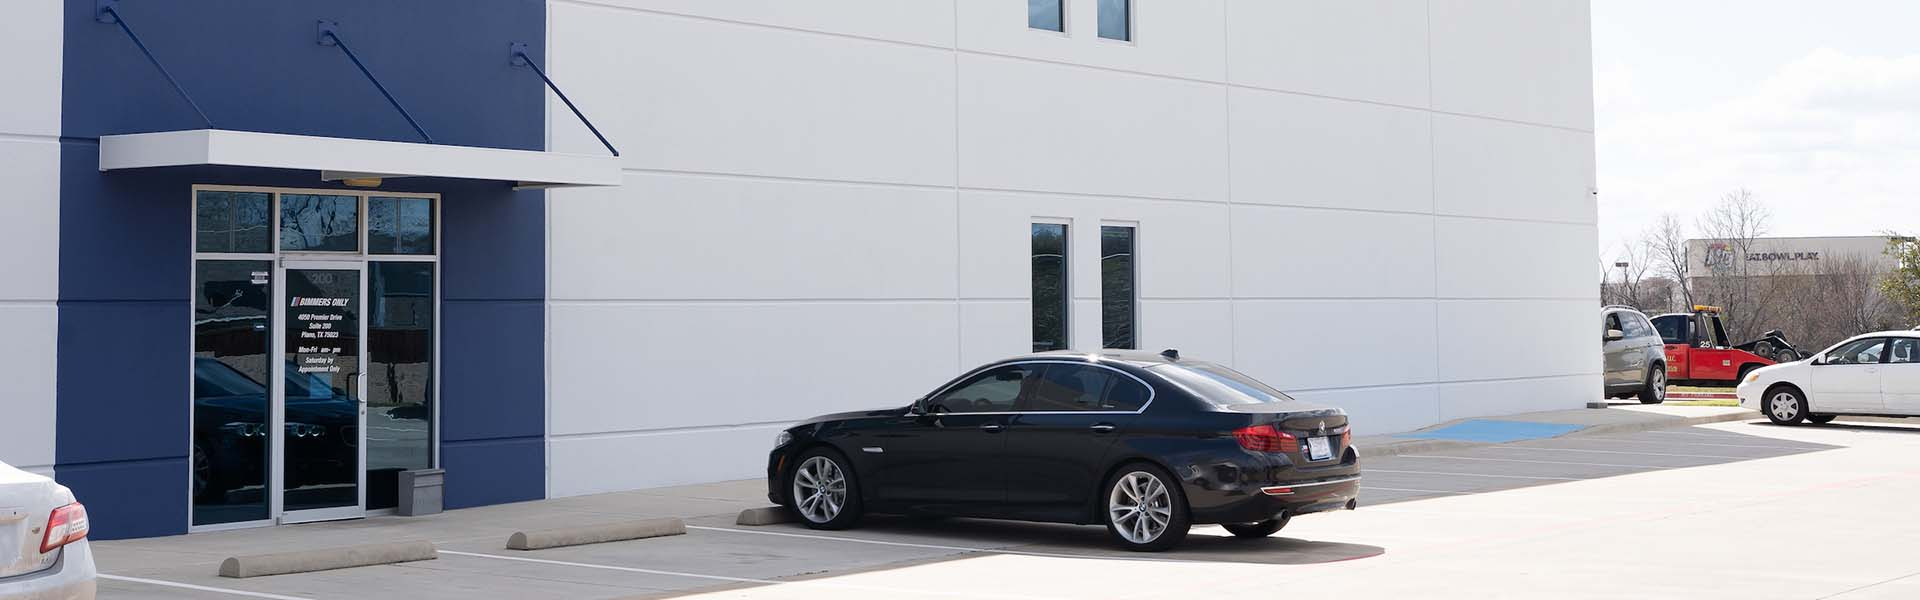 Best Bmw Repair Service In Dallas Plano Bimmers Only